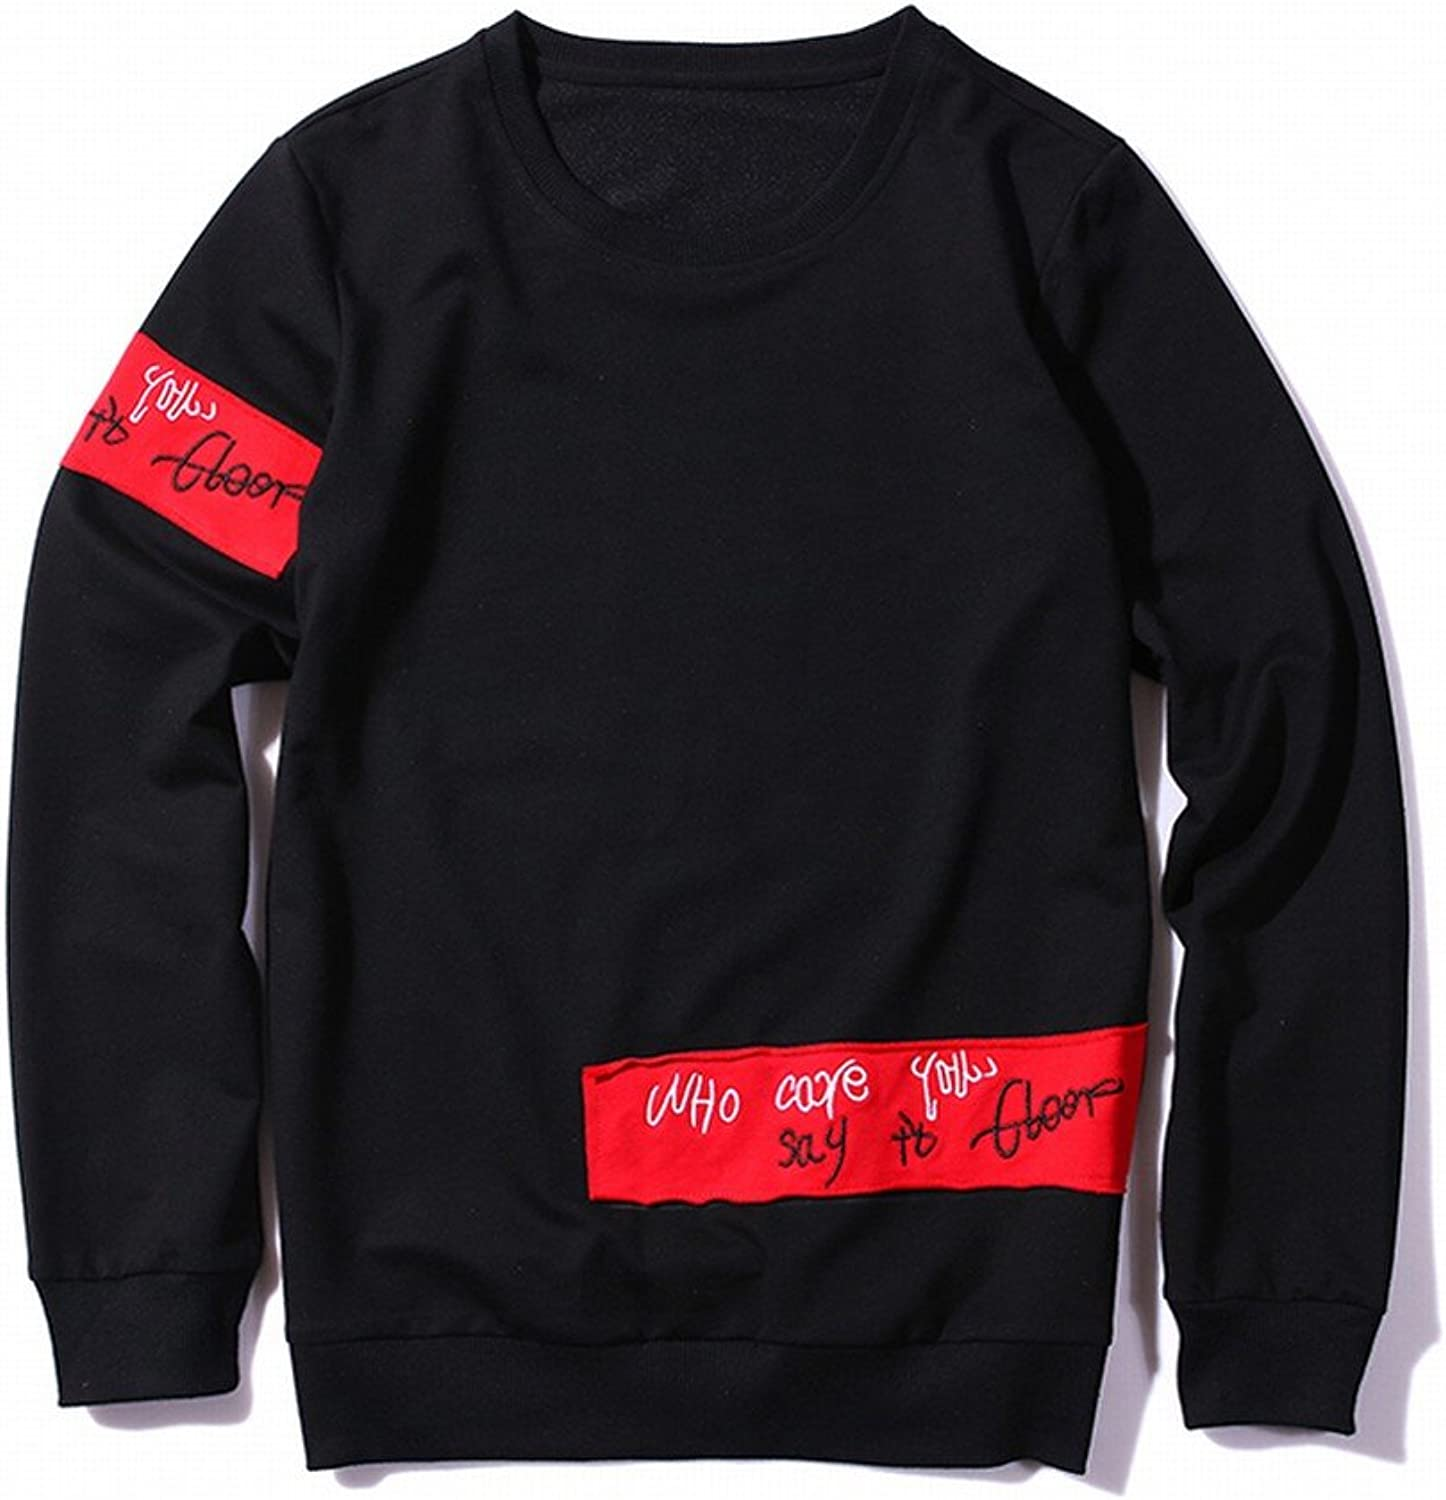 Autumn Men 'S Clothing Letters Printed Sweater LongSleeved TShirt